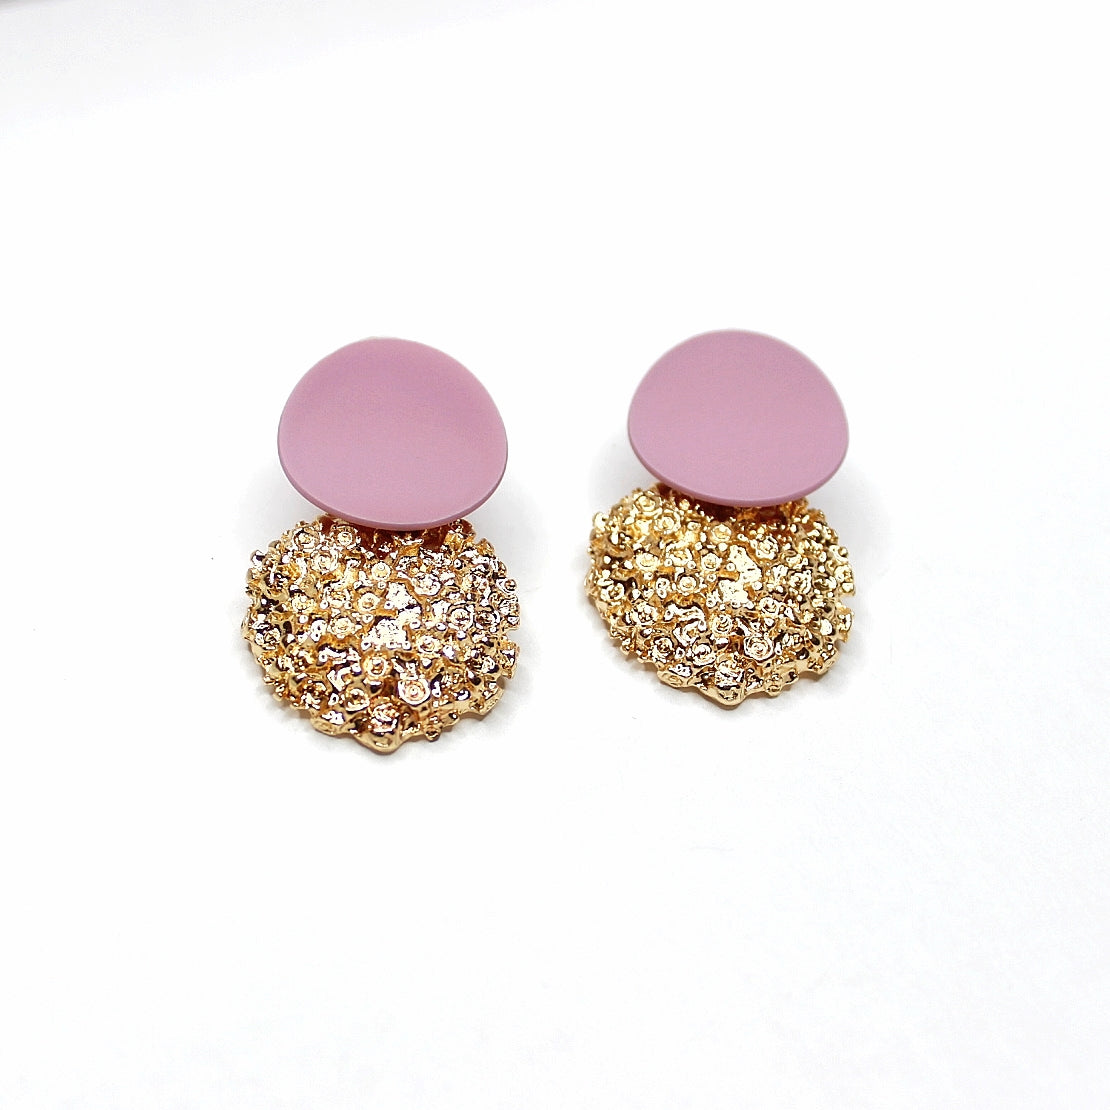 Buy beautiful Mauve and Gold Textured Circle Earrings - AWKN Jewelry's